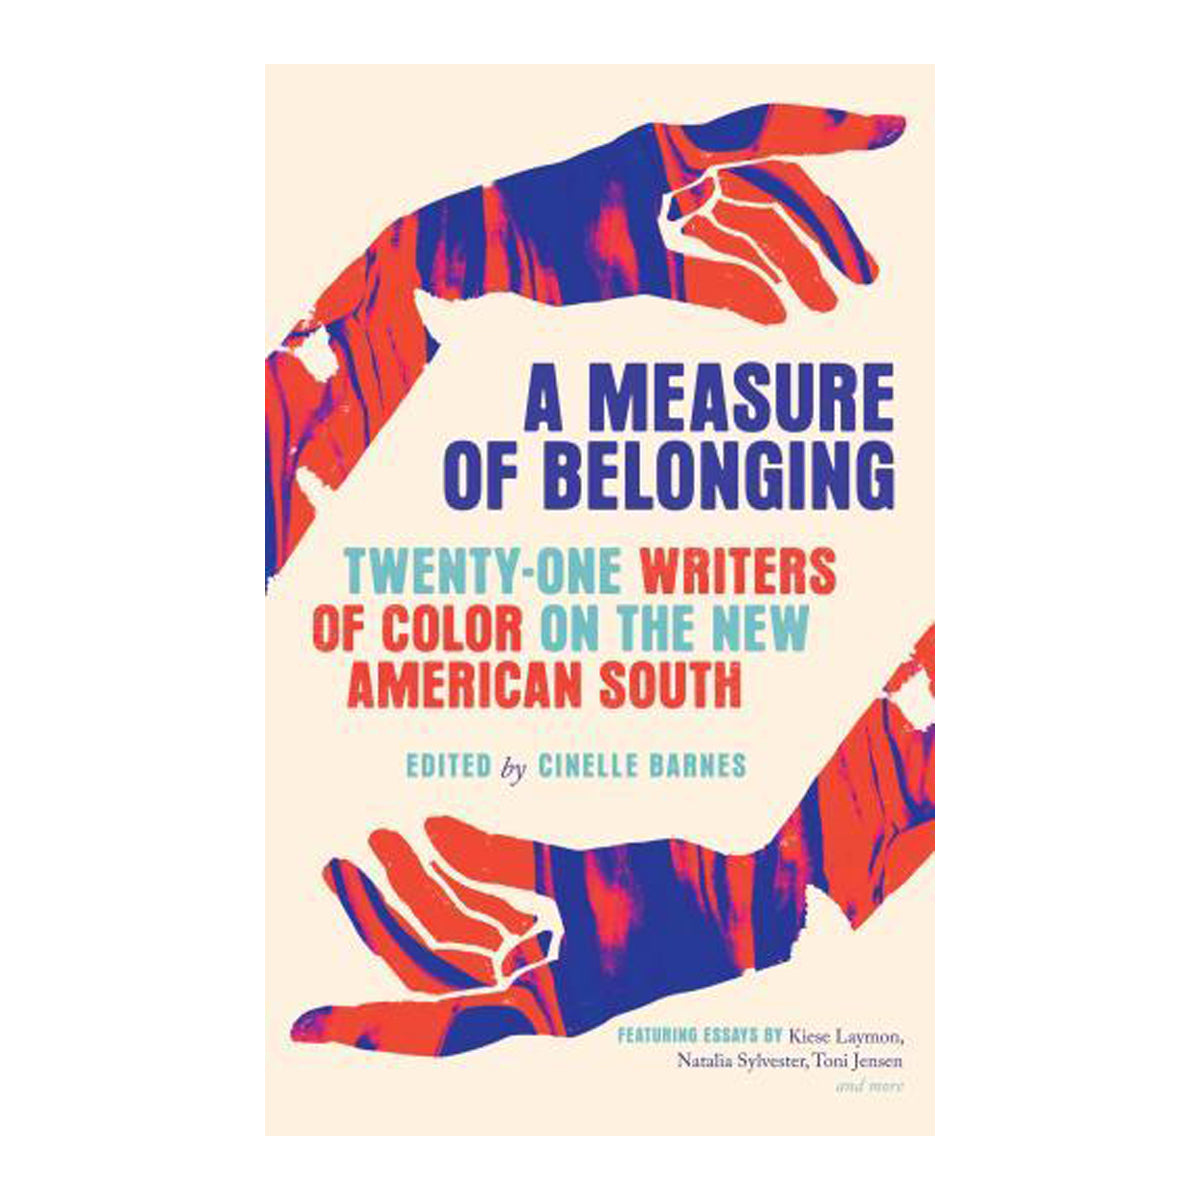 A Measure of Belonging: Twenty-One Writers of Color on the New American South